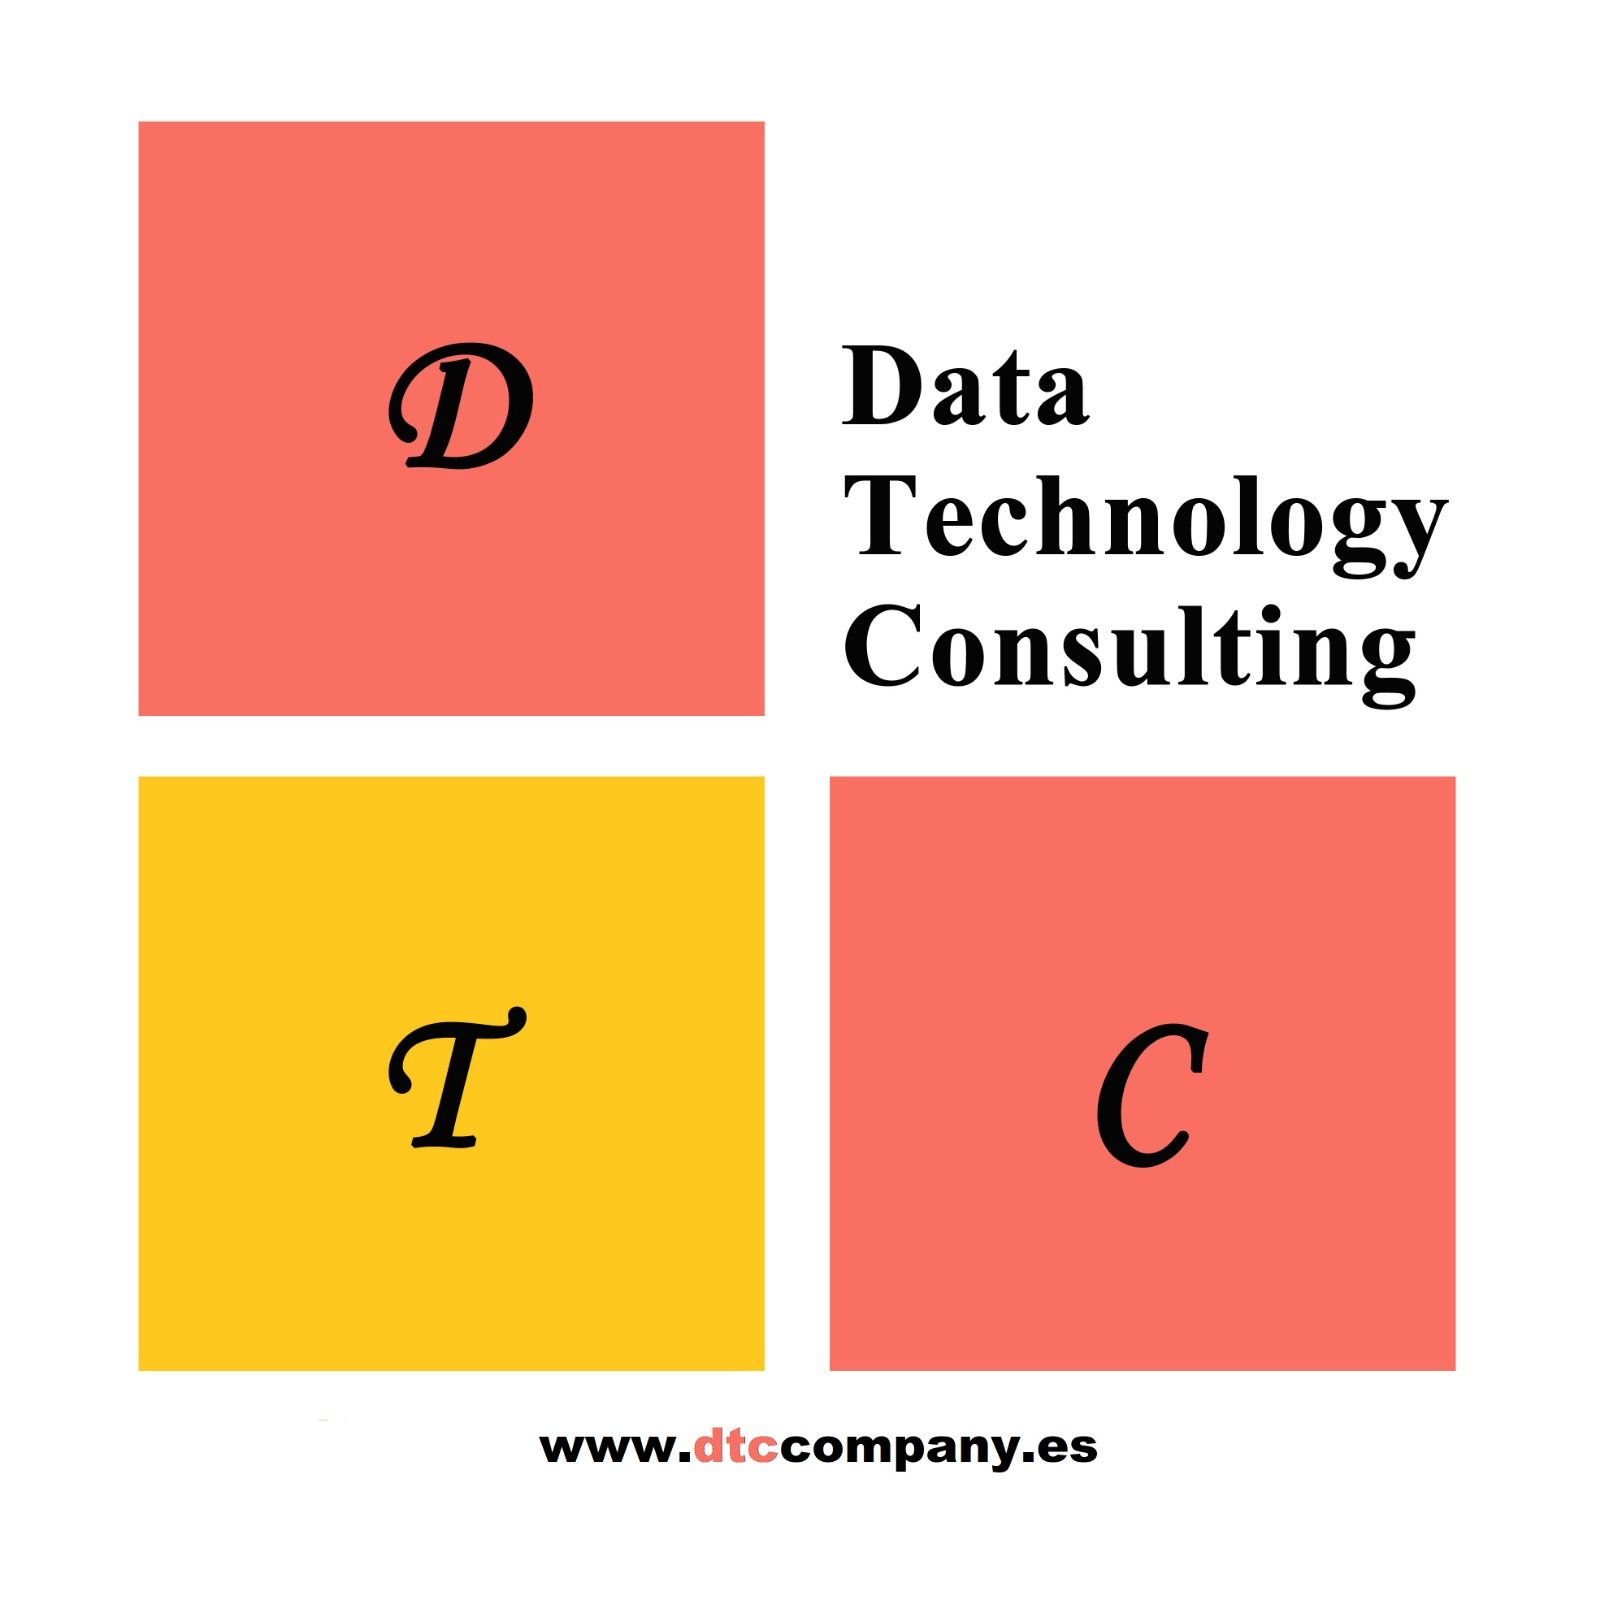 Data Technology Consulting